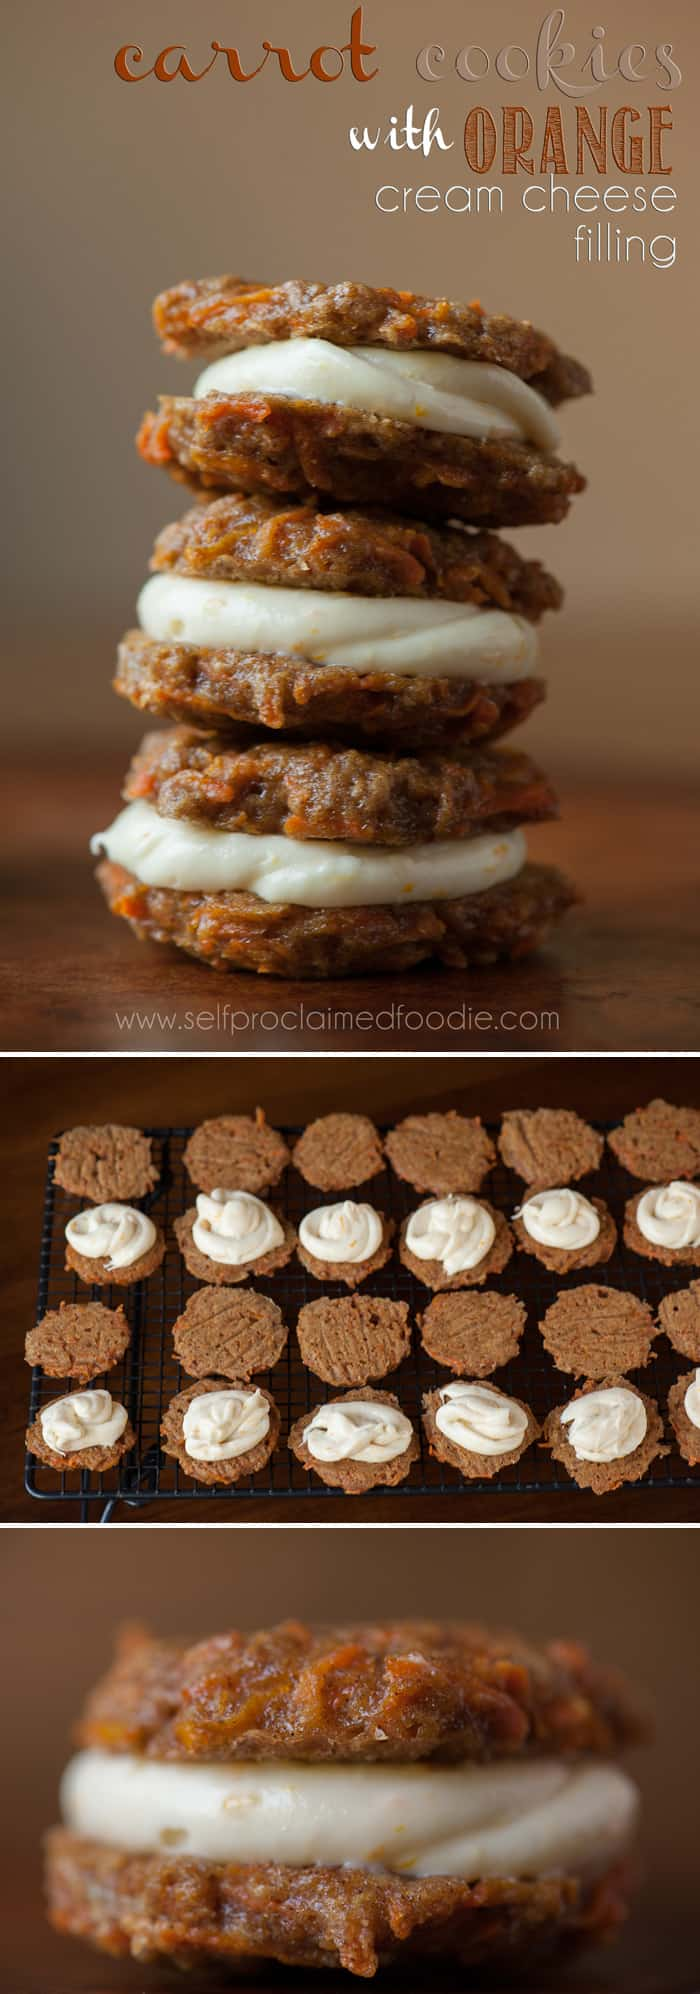 These rich and perfectly sweet Carrot Sandwich Cookies with Orange Cream Cheese Filling are super soft and beyond delicious. You will love them.